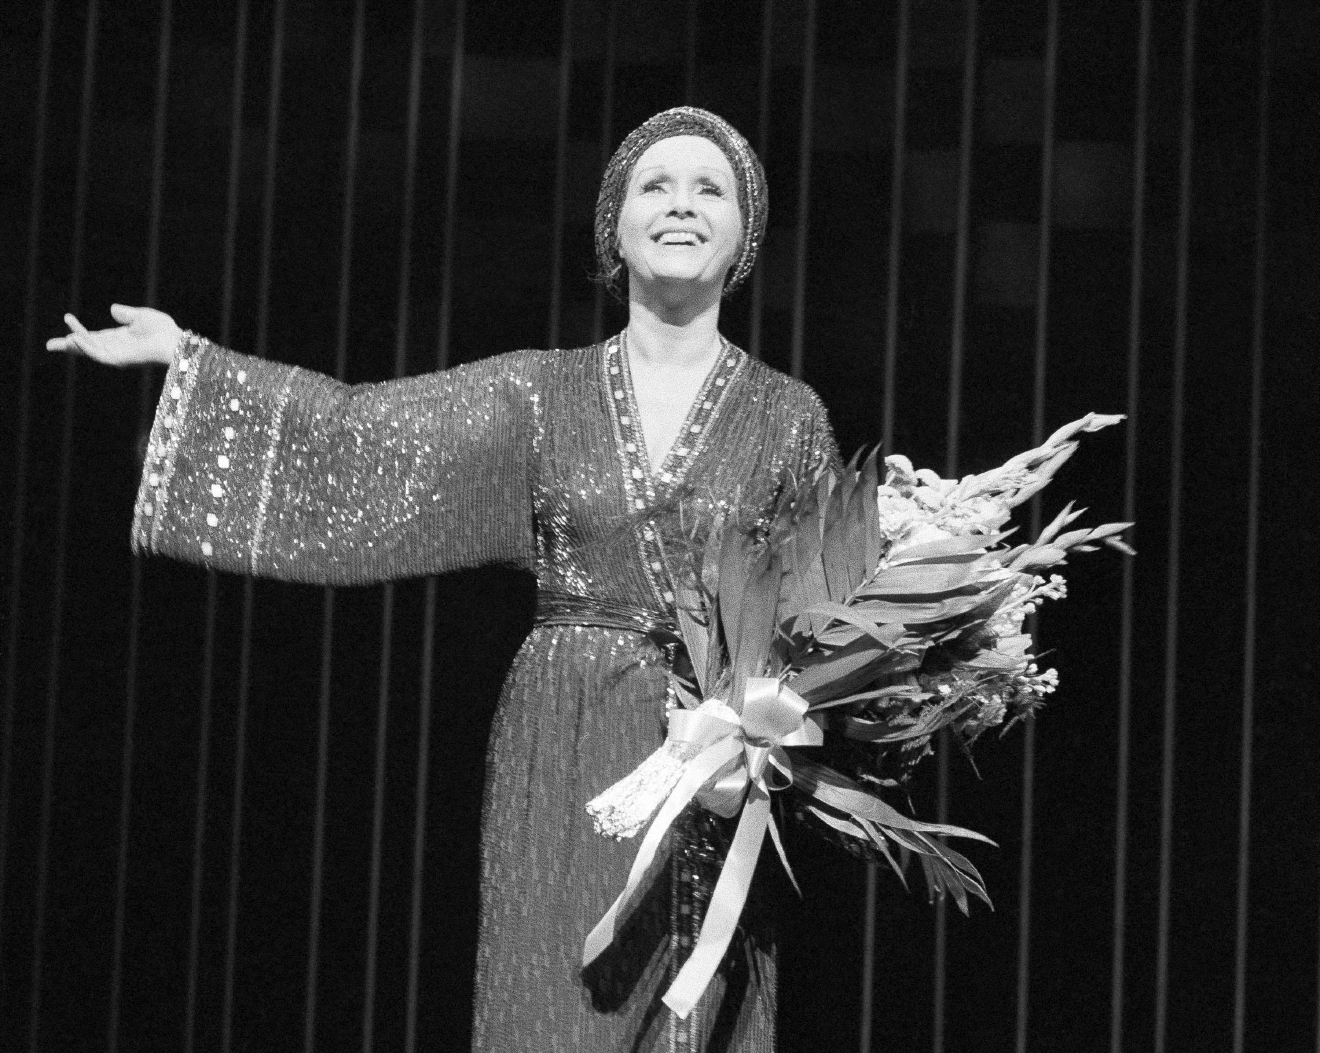 "FILE- In this March 8, 1983, file photo, actress Debbie Reynolds returns for a curtain call after a performance of ""Woman of the Year"" at New York's palace theatre. Reynolds, star of the 1952 classic ""Singin' in the Rain"" died Wednesday, Dec. 28, 2016, according to her son Todd Fisher. She was 84. (AP Photo/Kaye, File)"